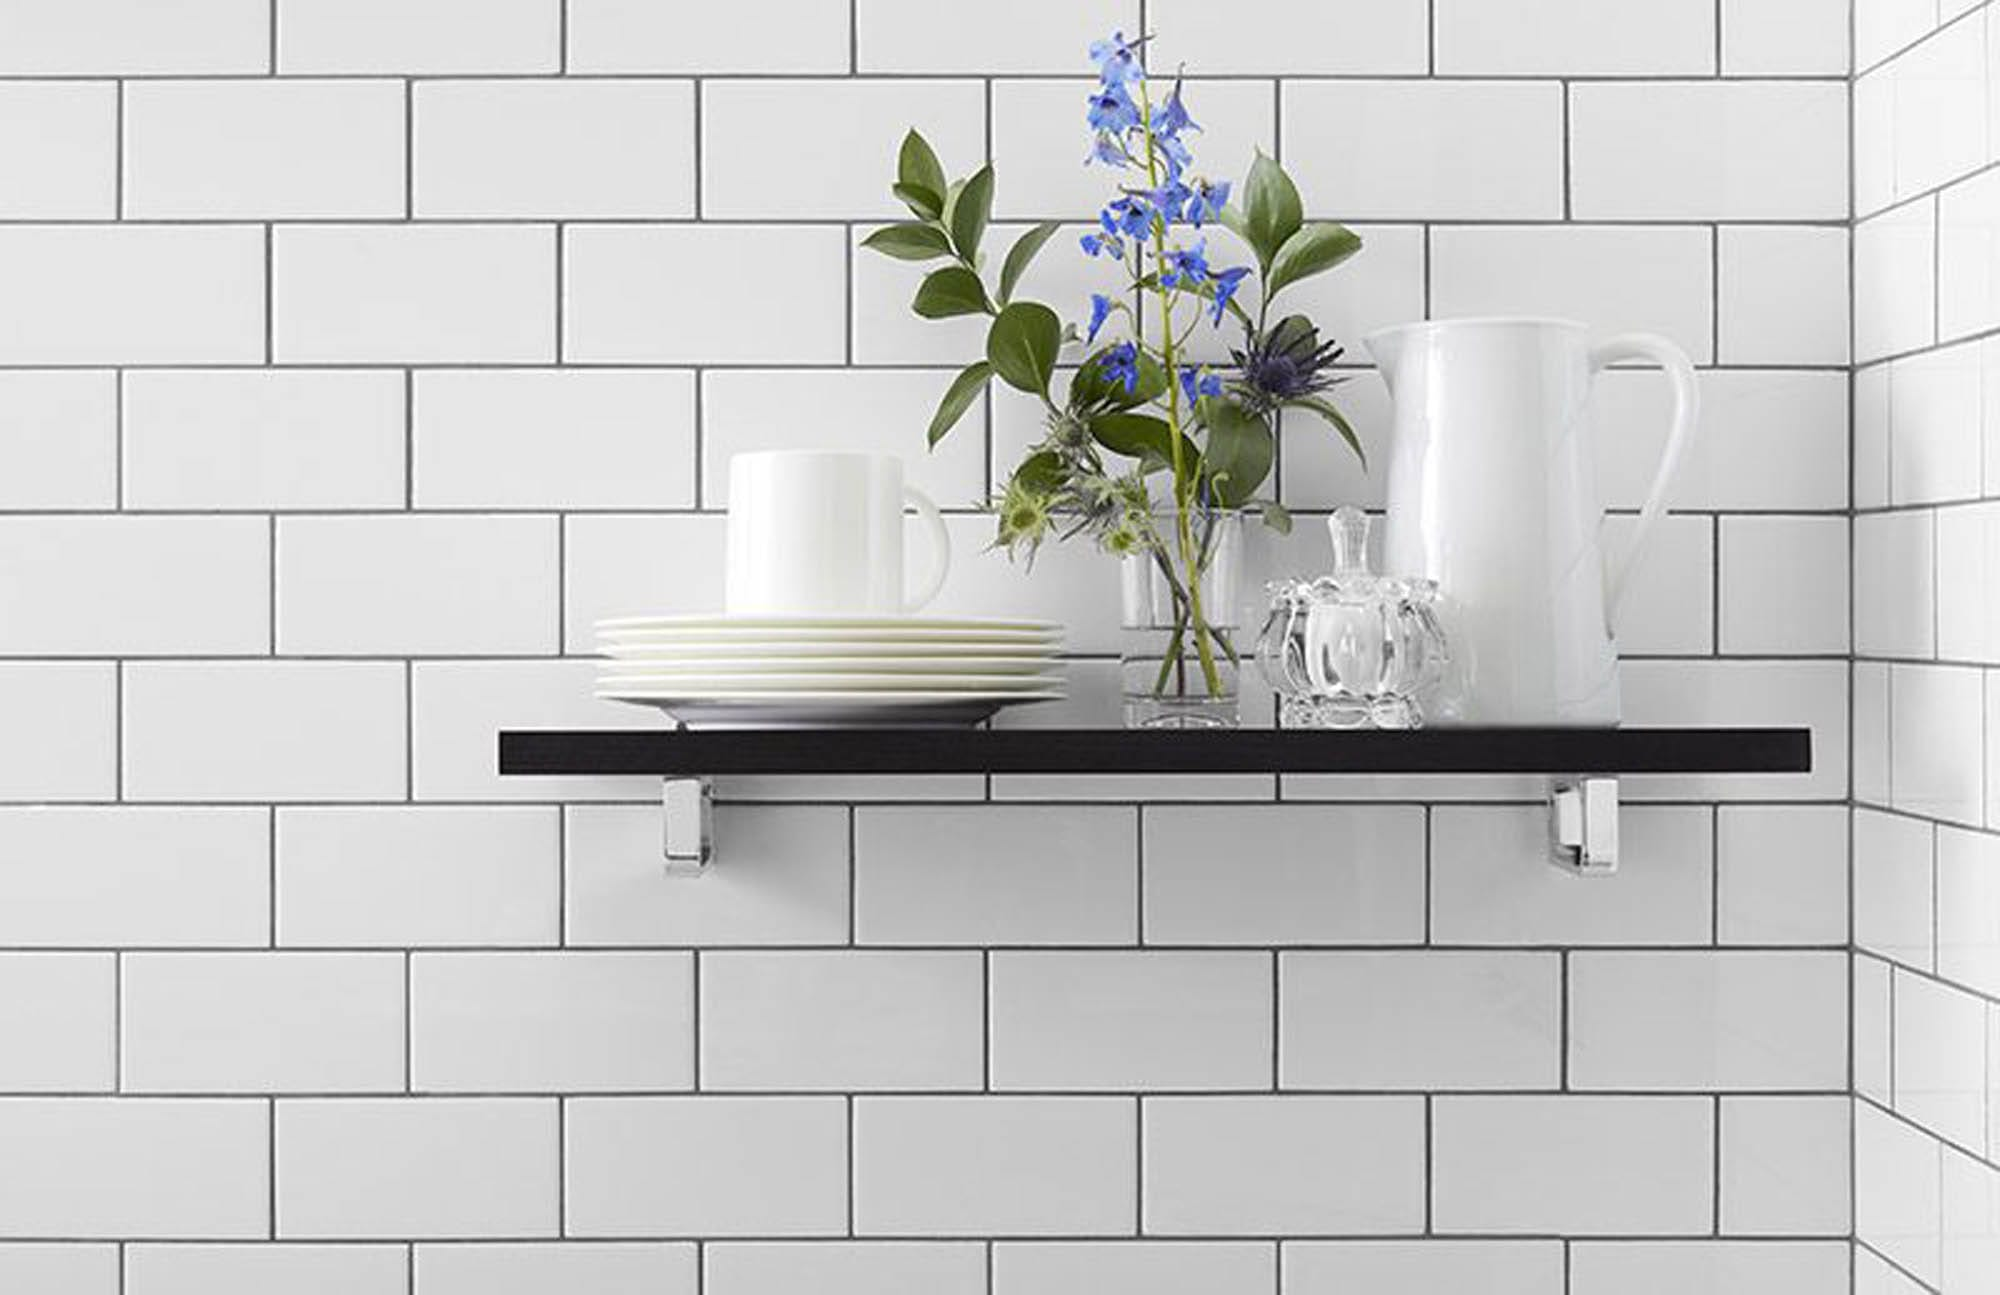 shelf with flowers against tile